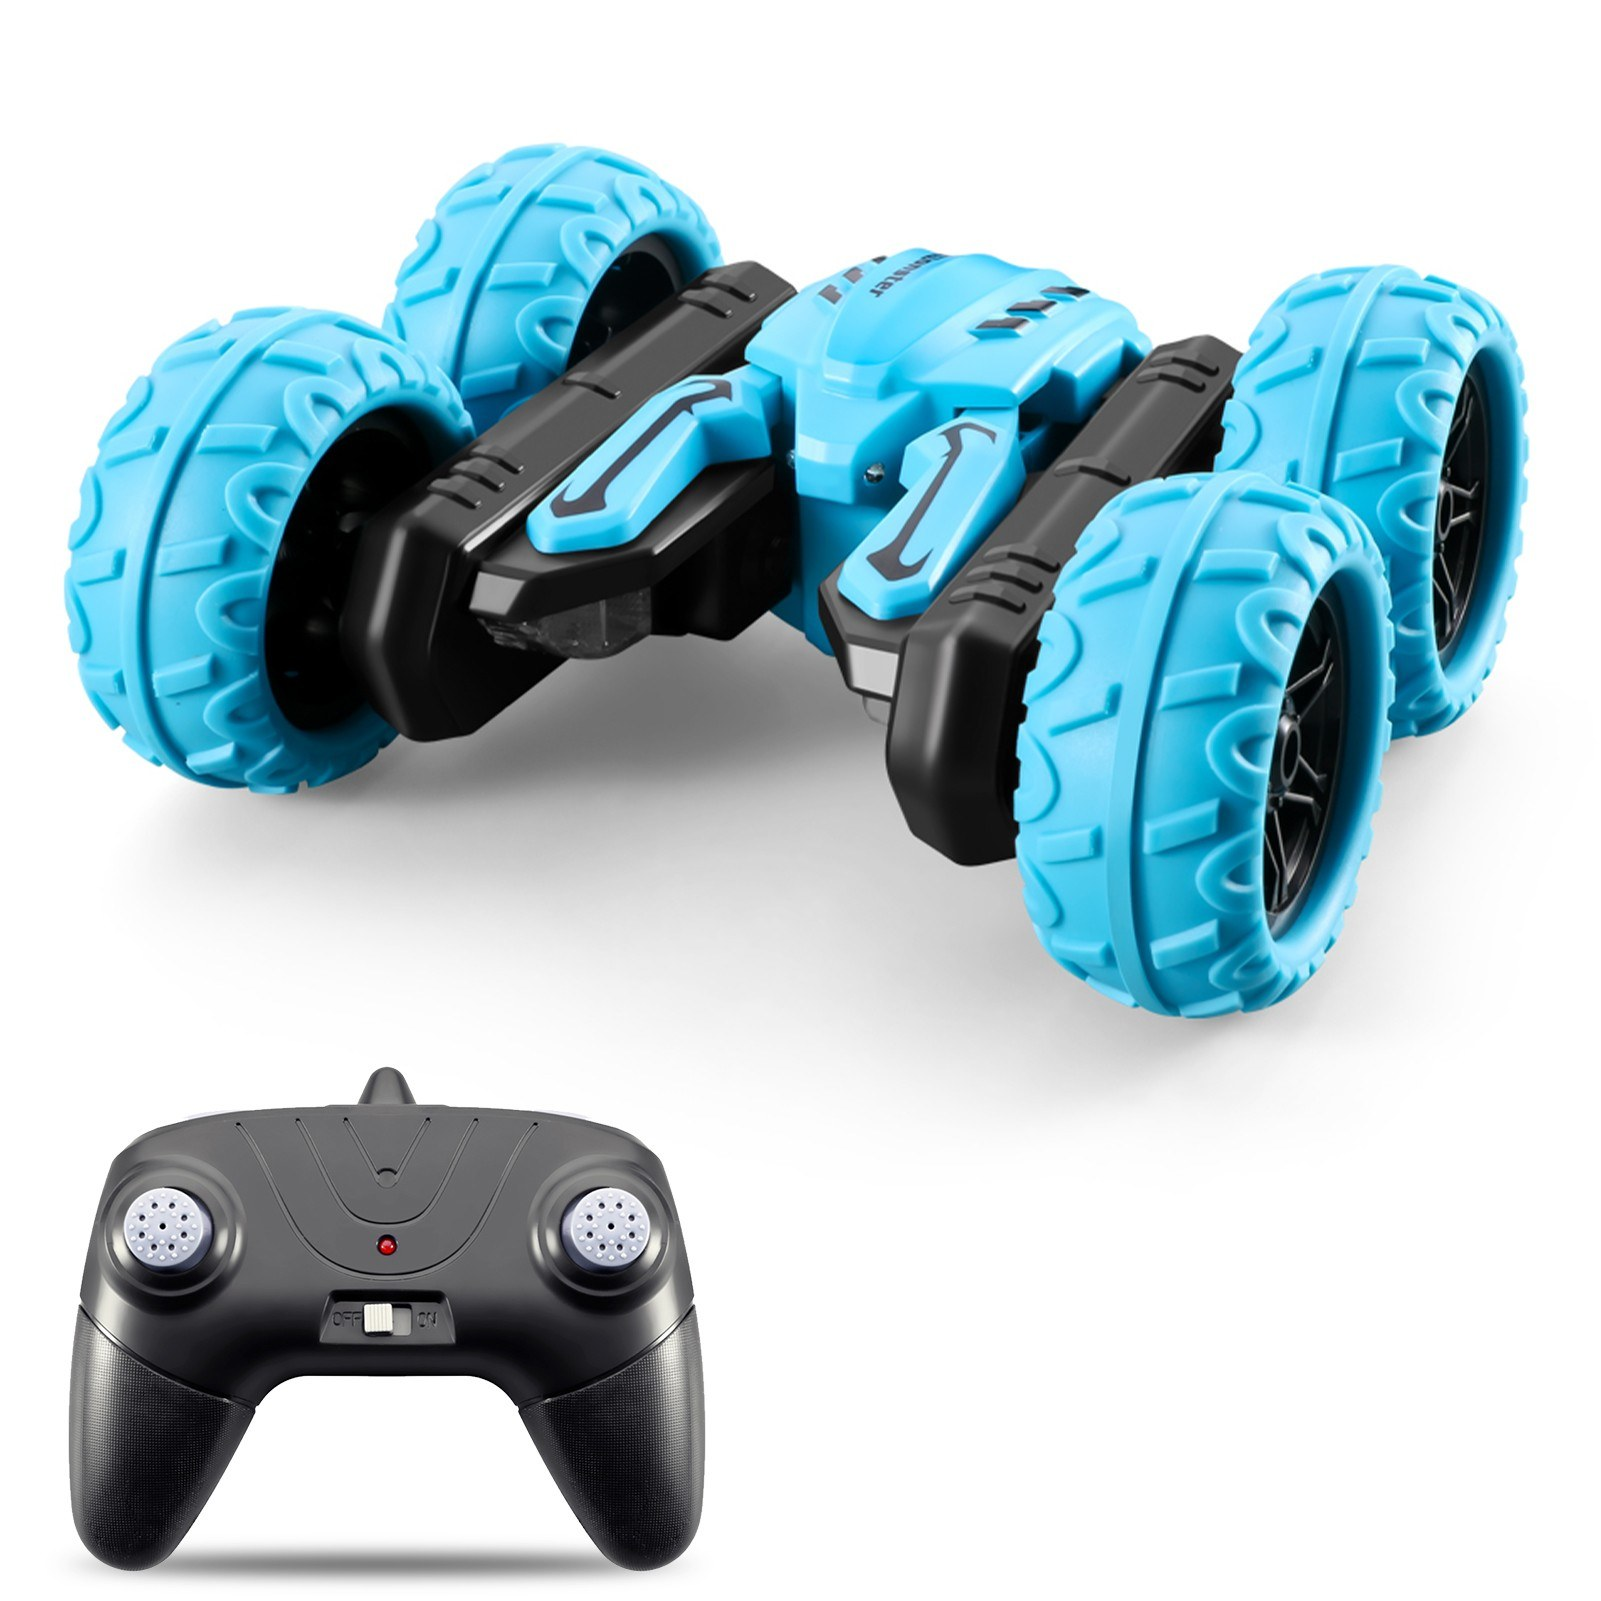 - 55% OFF 2.4GHz 1/28 4WD Remote Control Stunt Car, Free Shipping $29.99